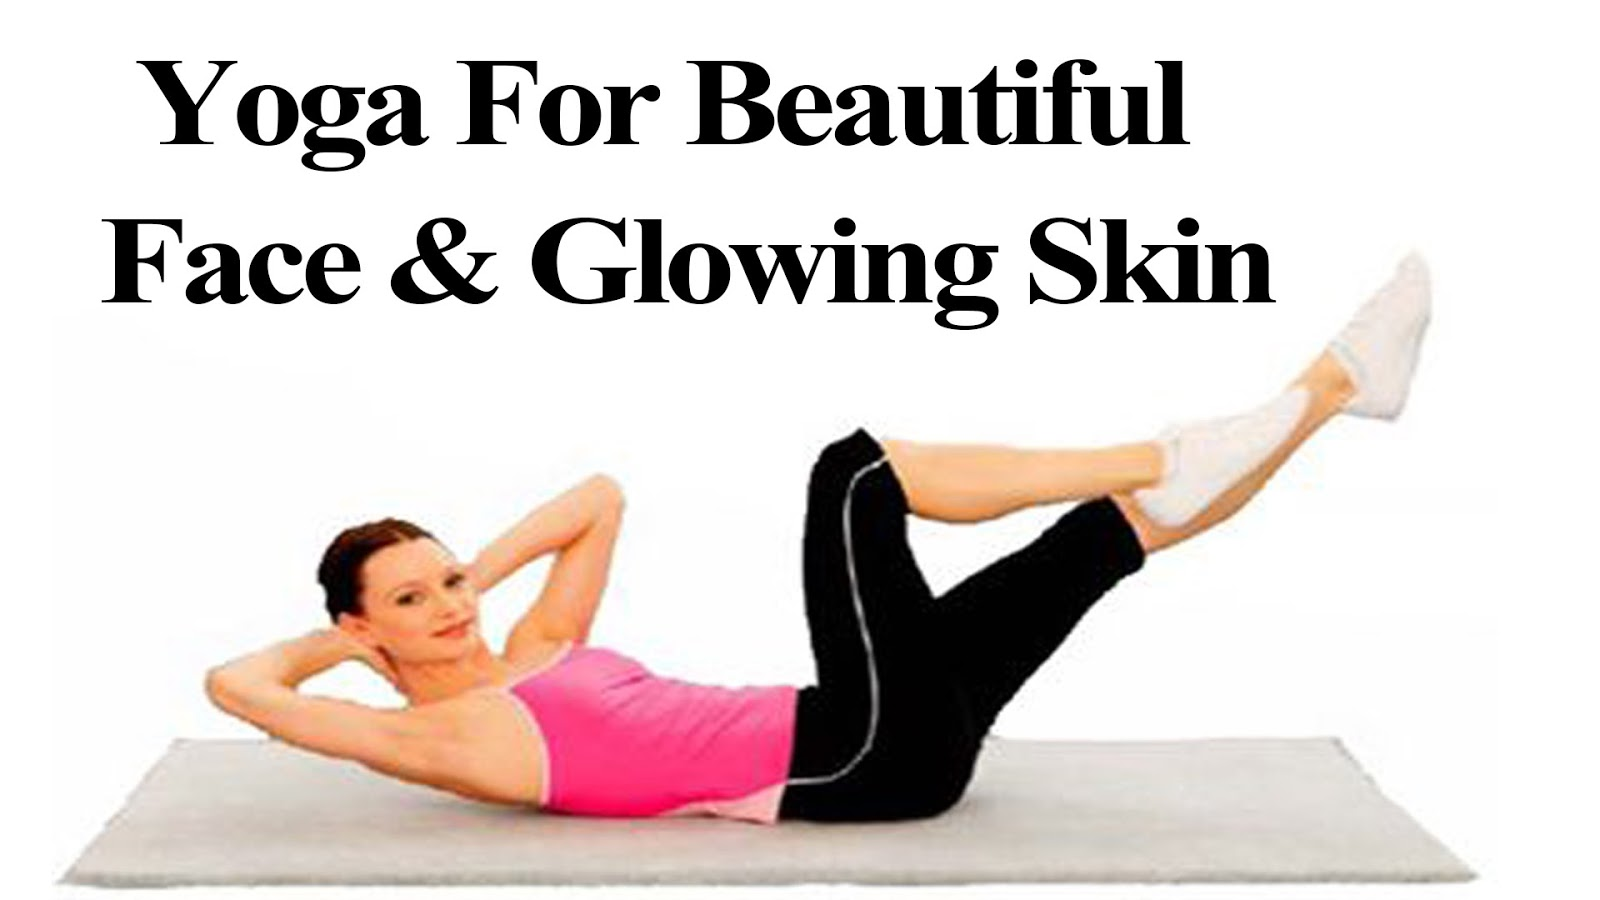 Yoga Exercises For Shiny Skin 8 Simple Yoga Poses For Glowing Skin